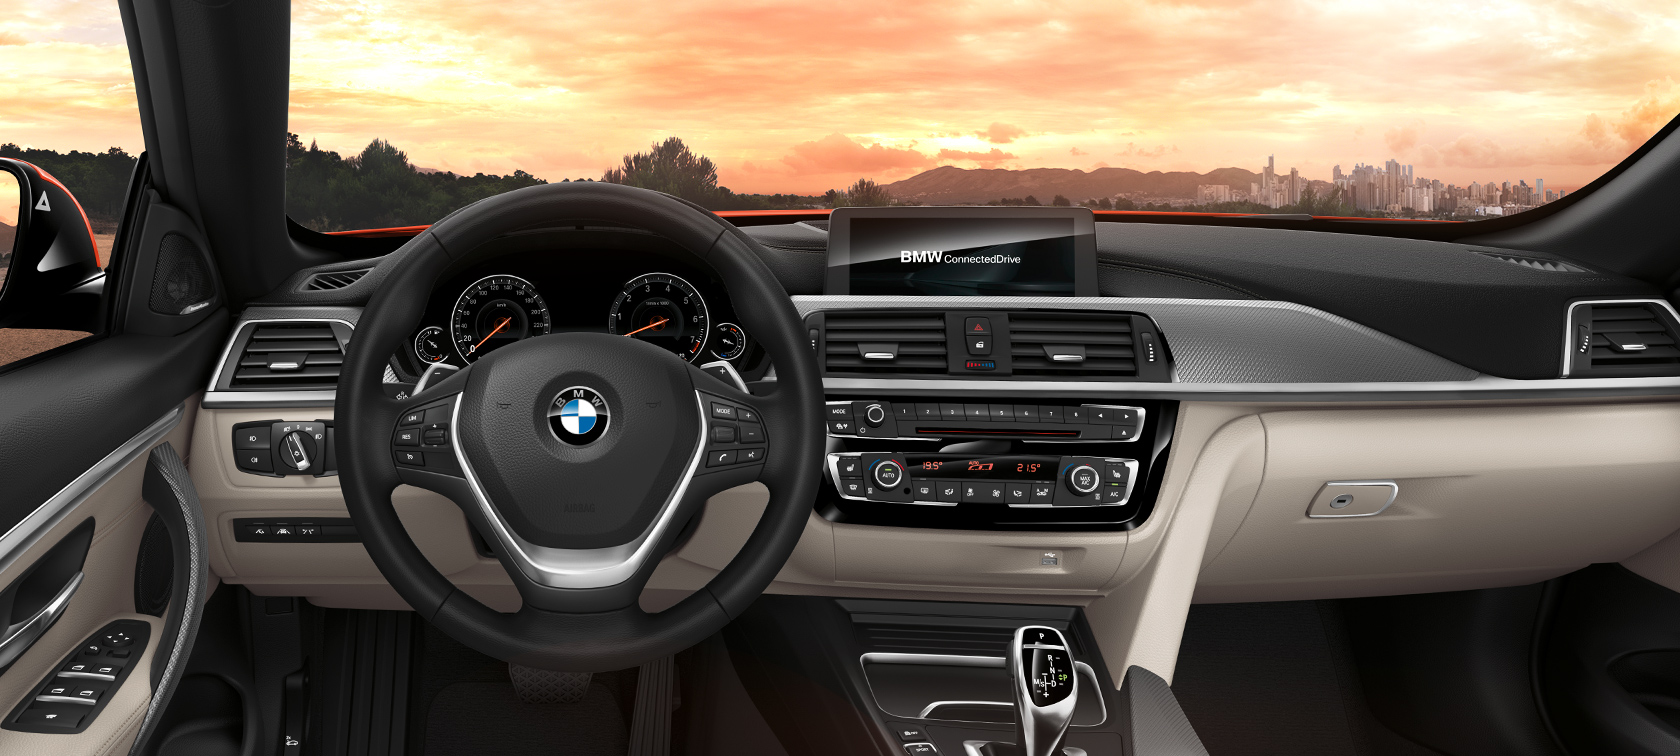 BMW 4 Series Convertible: ConnectedDrive and control panel.